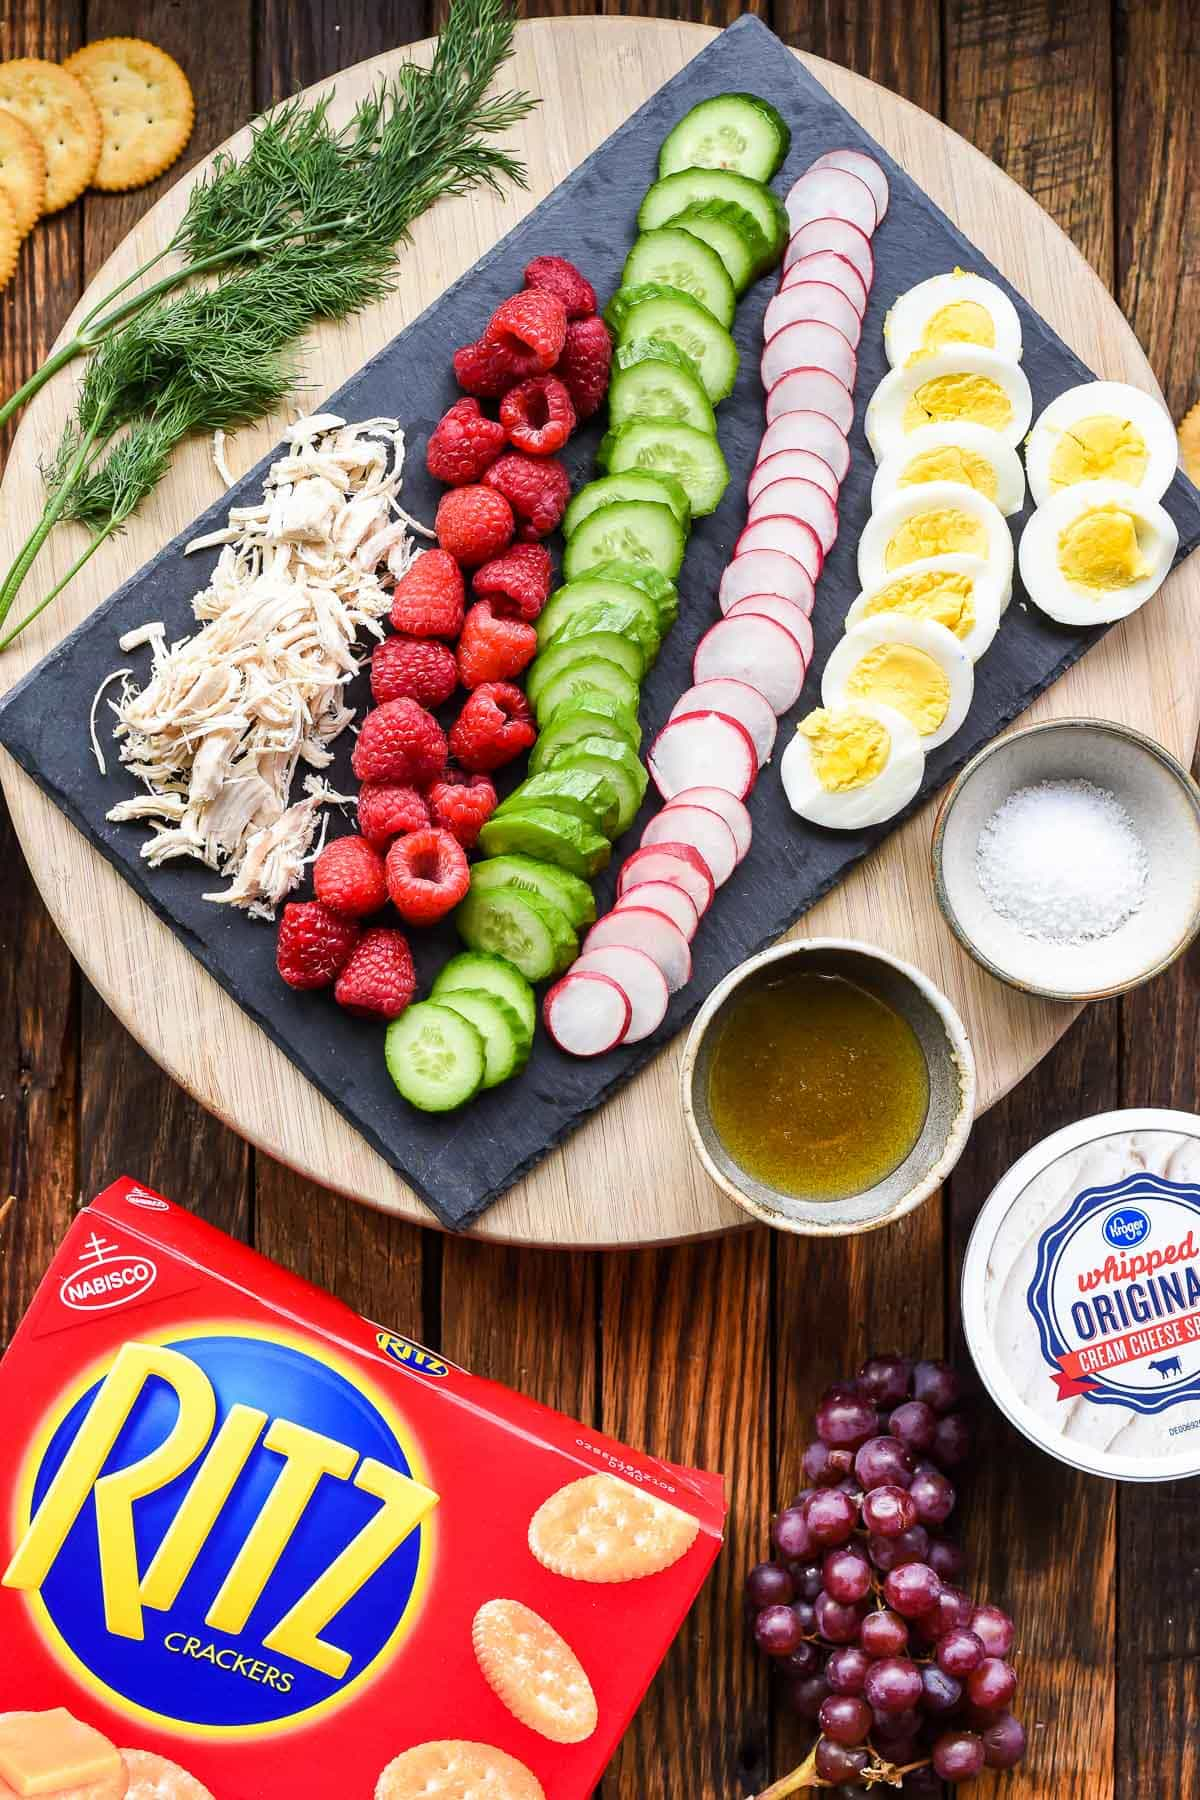 Toppings for Ritz crackers on a platter